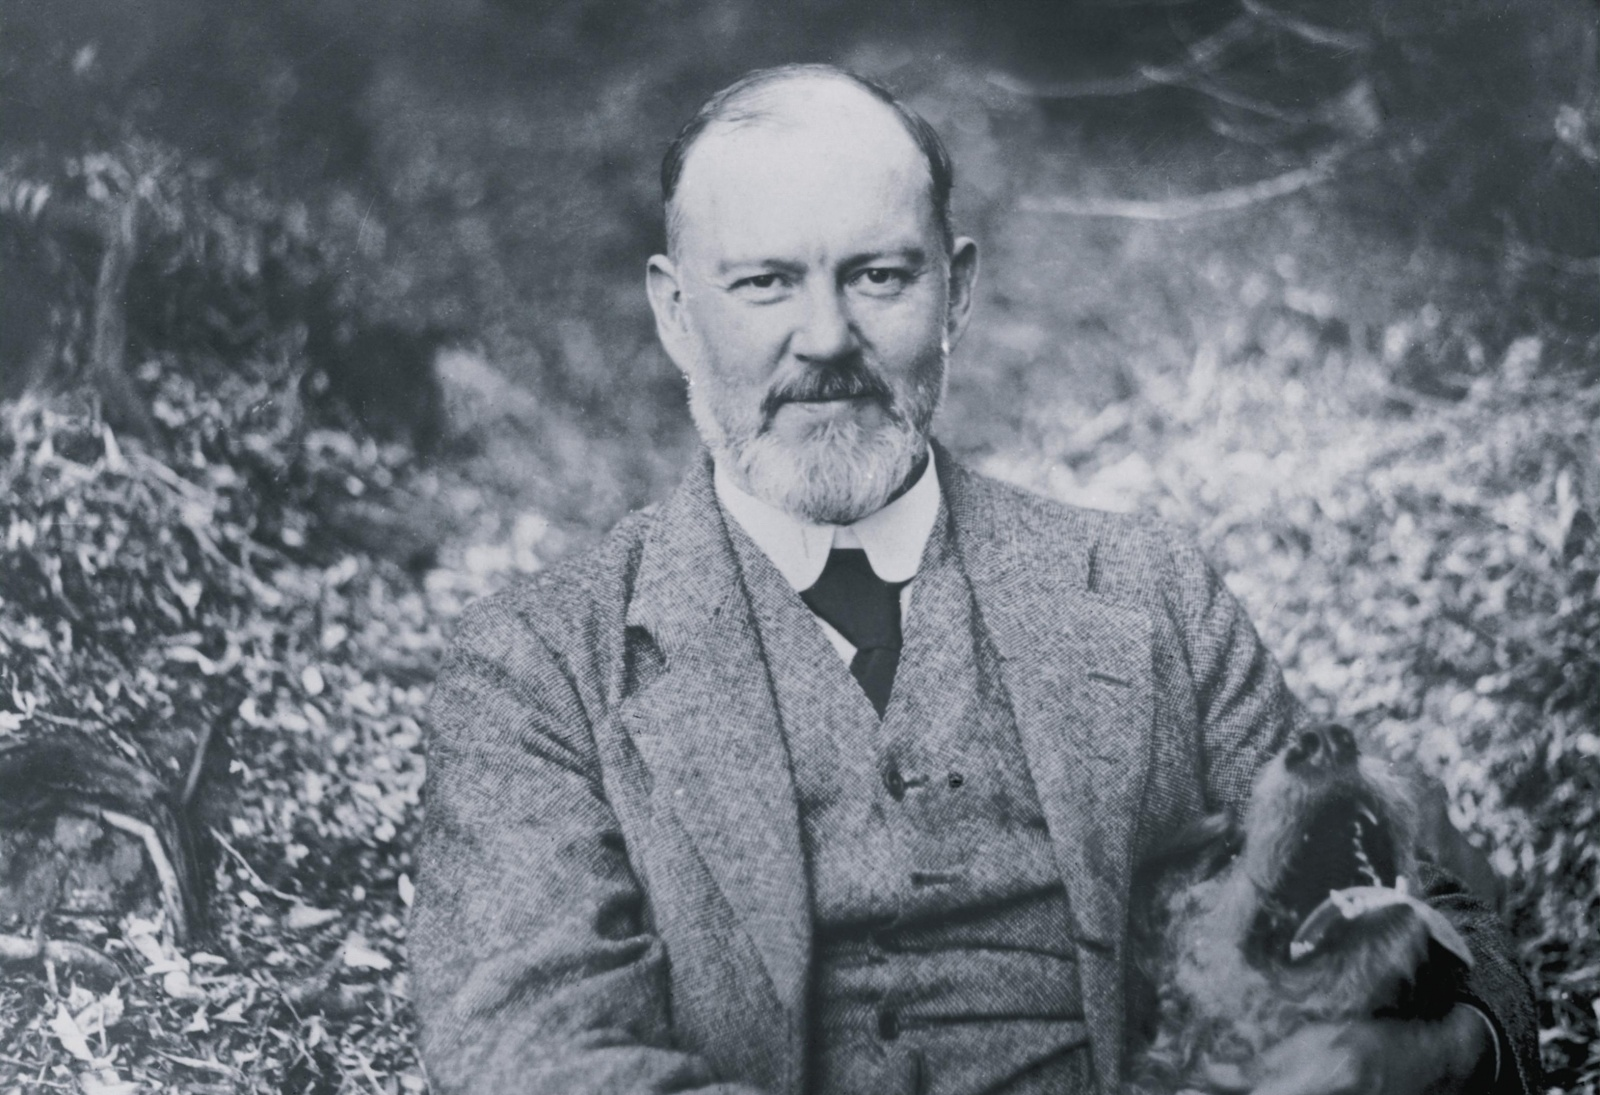 Sir-Henry-Royce